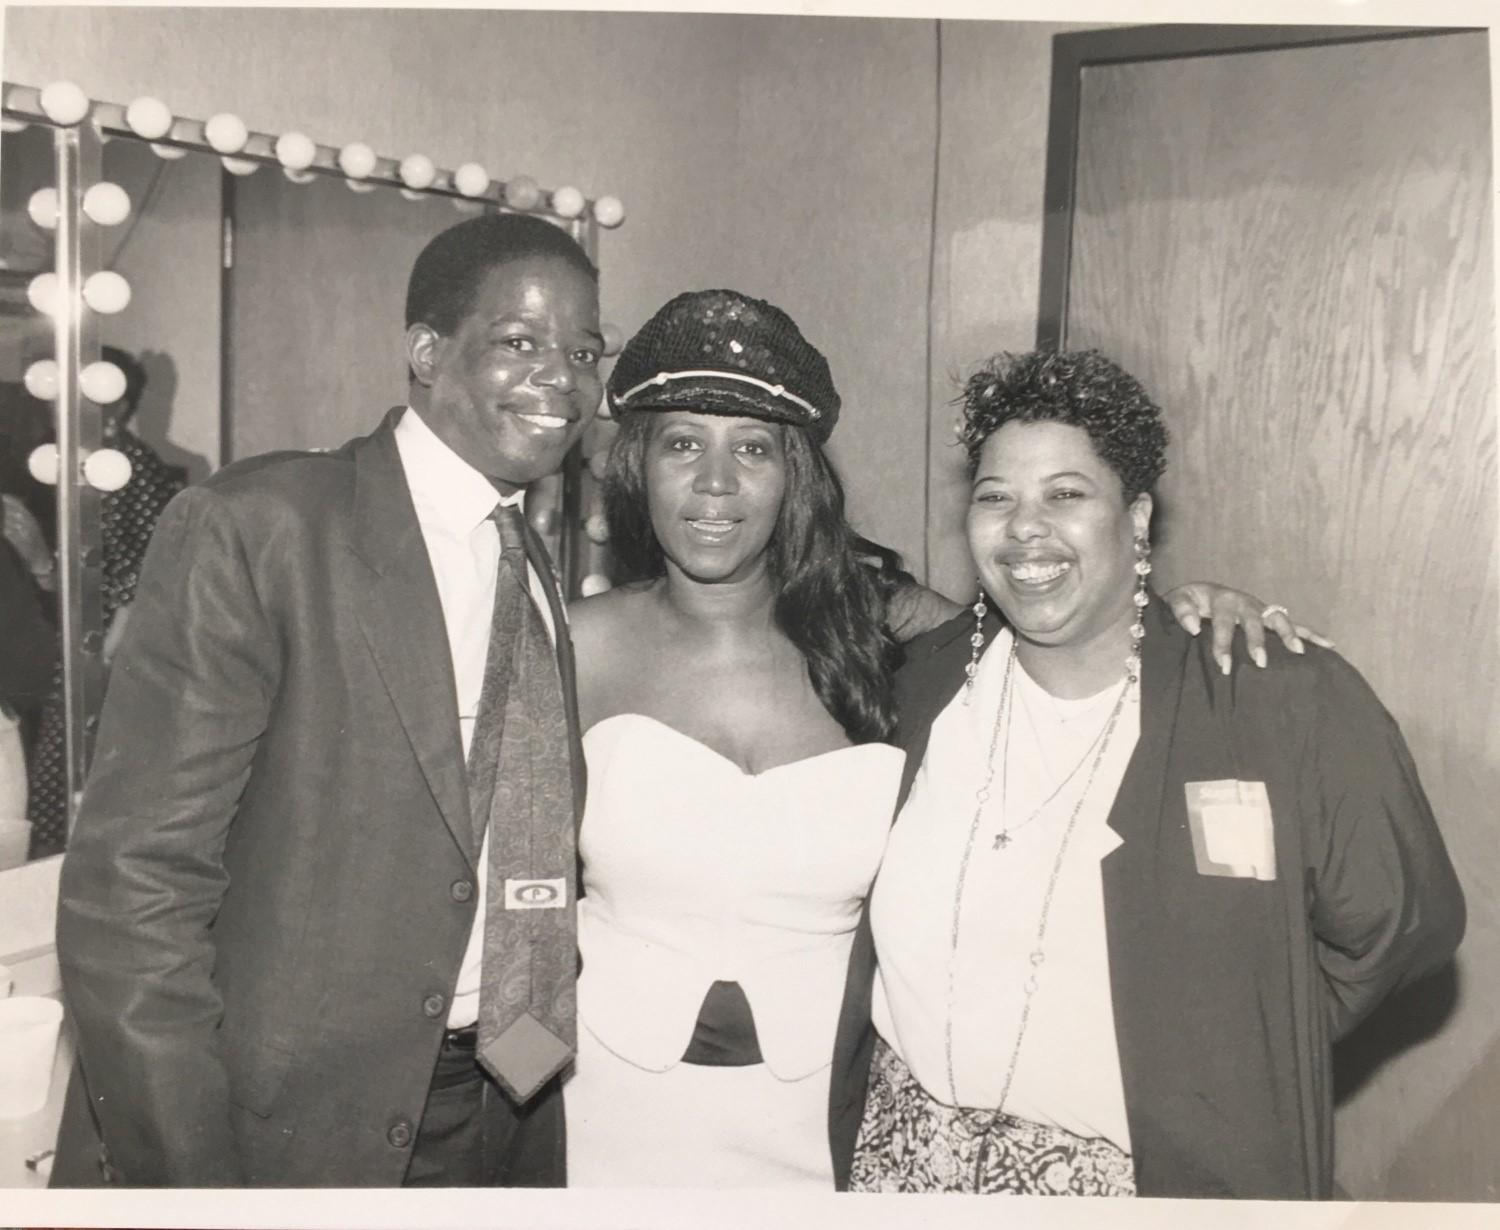 May 11, 1991: Aretha Franklin at the Holiday Star Plaza with Clarence Waldron, then senior editor at Jet Magazine, and Ava Odom Martin, then Ebony/Jet showcase producer and current Chicago Tonight assignment manager. (Courtesy of Debra Meeks Photography)